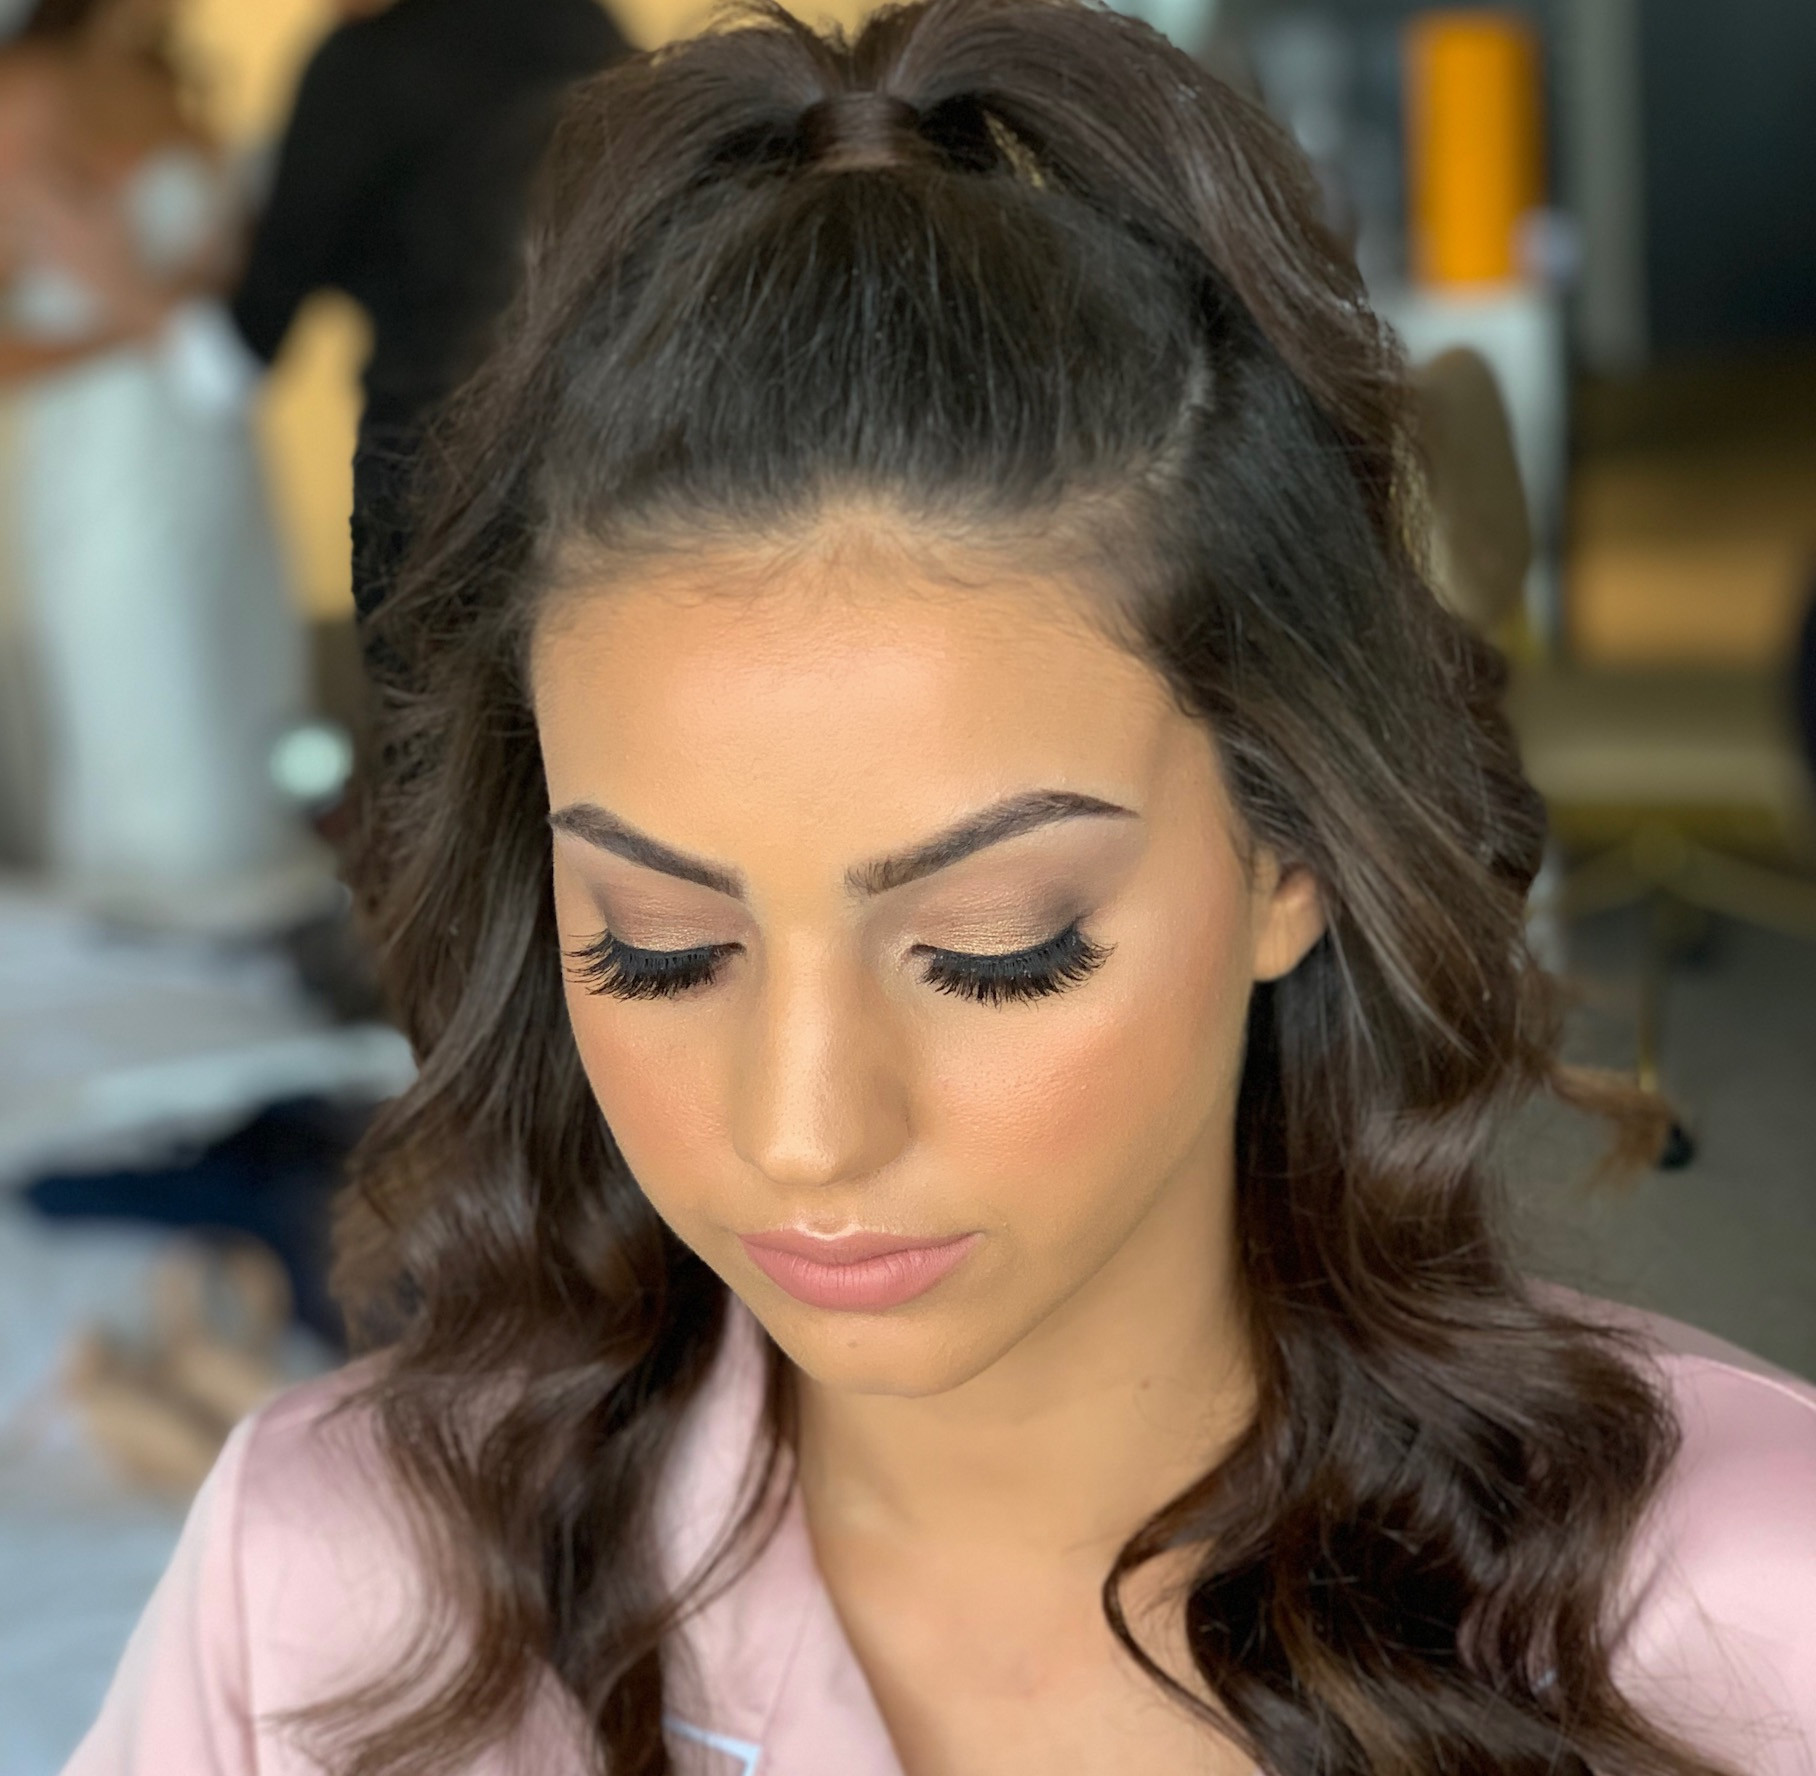 MAKEUP AND HAIR - ADVANCED DOWNSTYLING